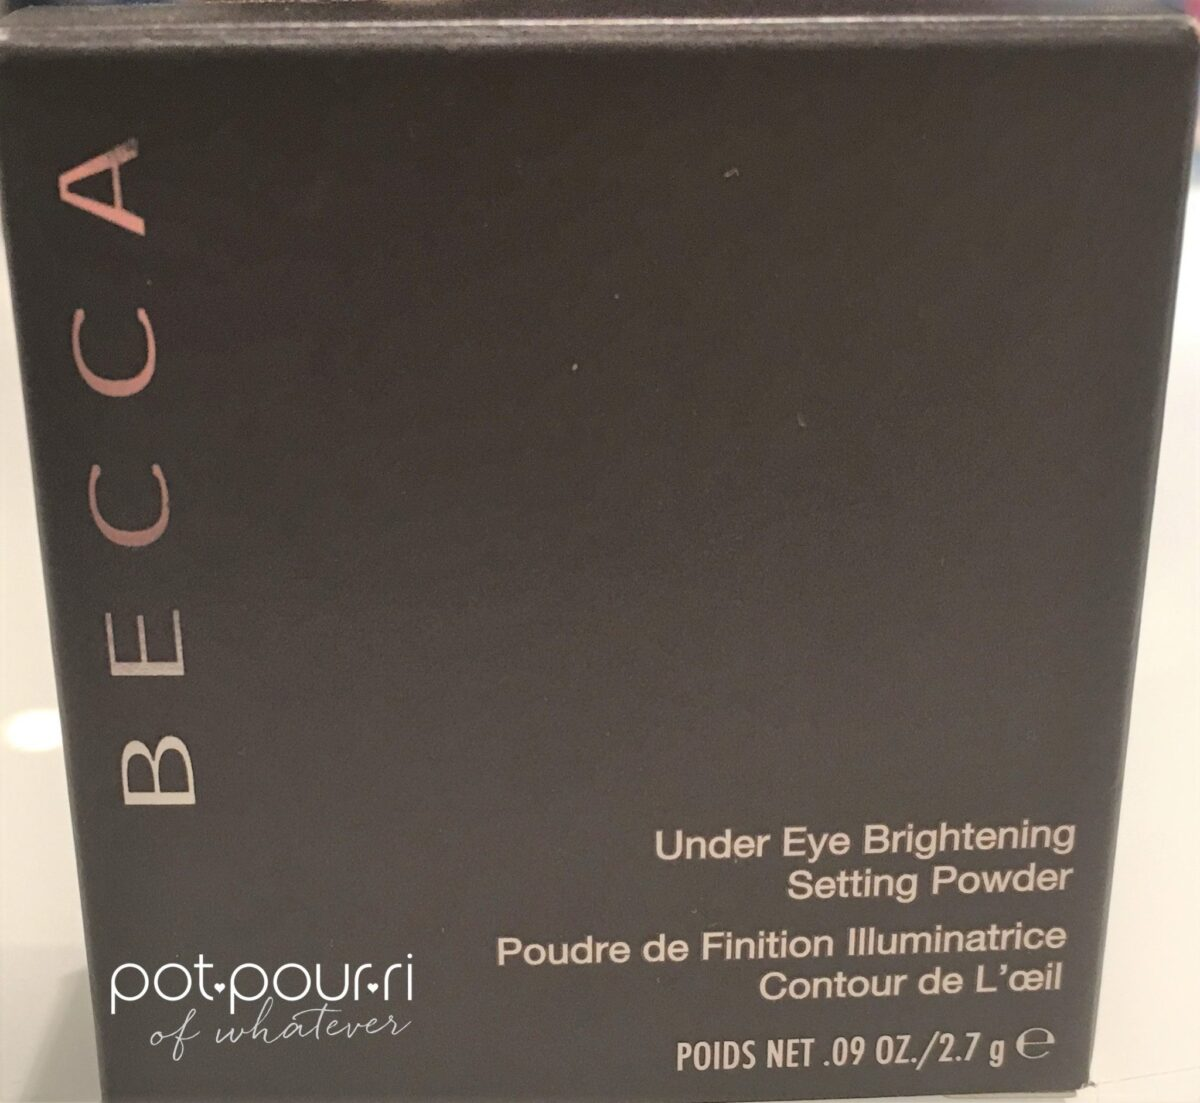 under-eye=brightening-setting-powder box